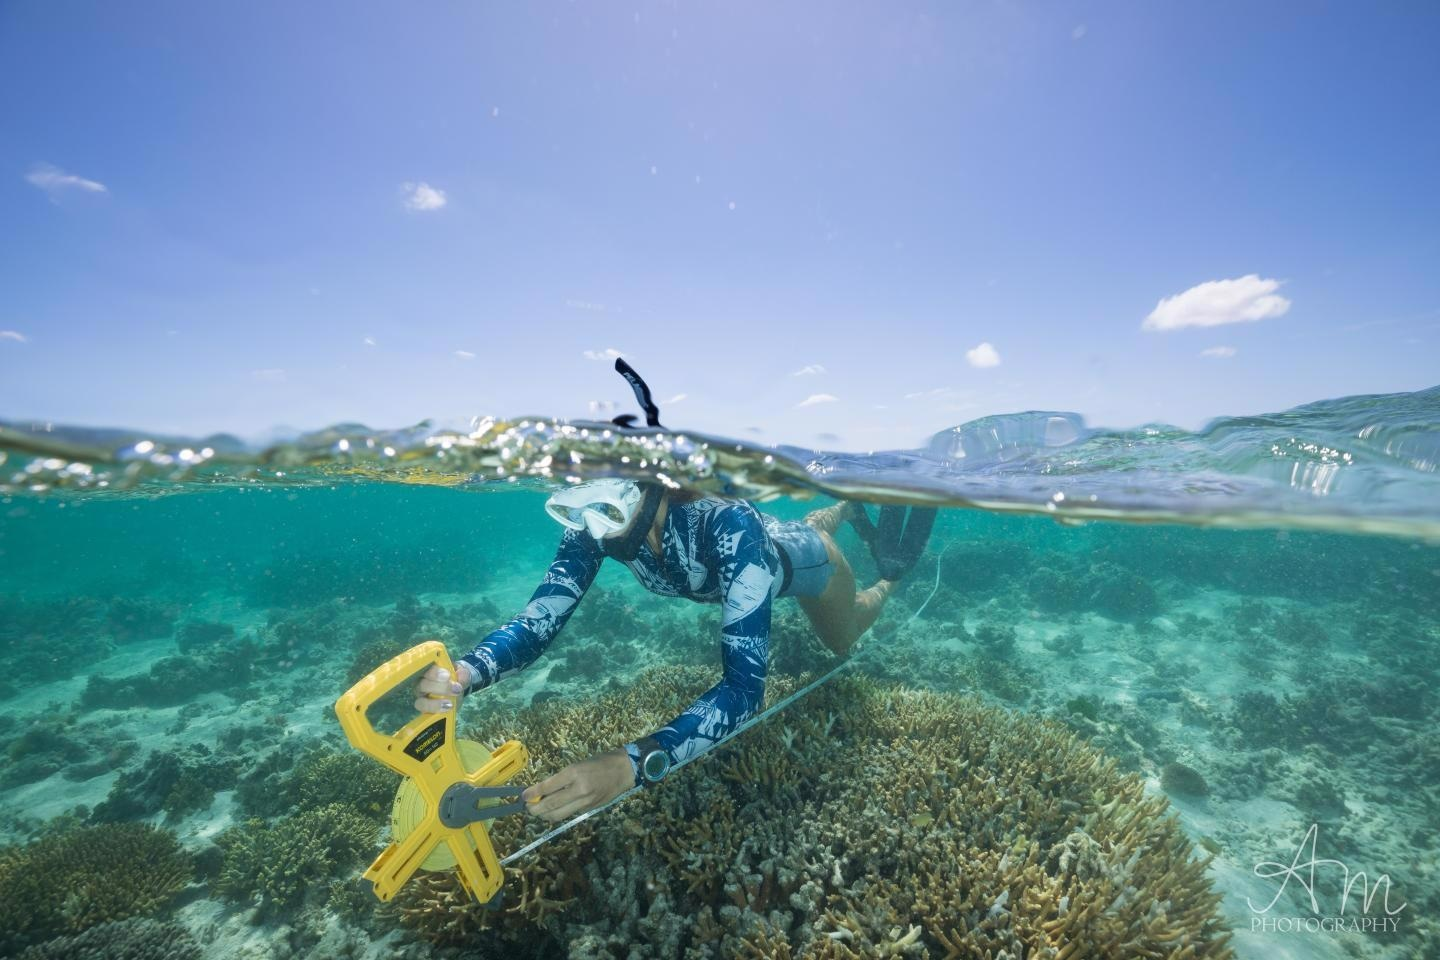 Declining Coral Health may Contribute to Reduce Global Calcification Rates.